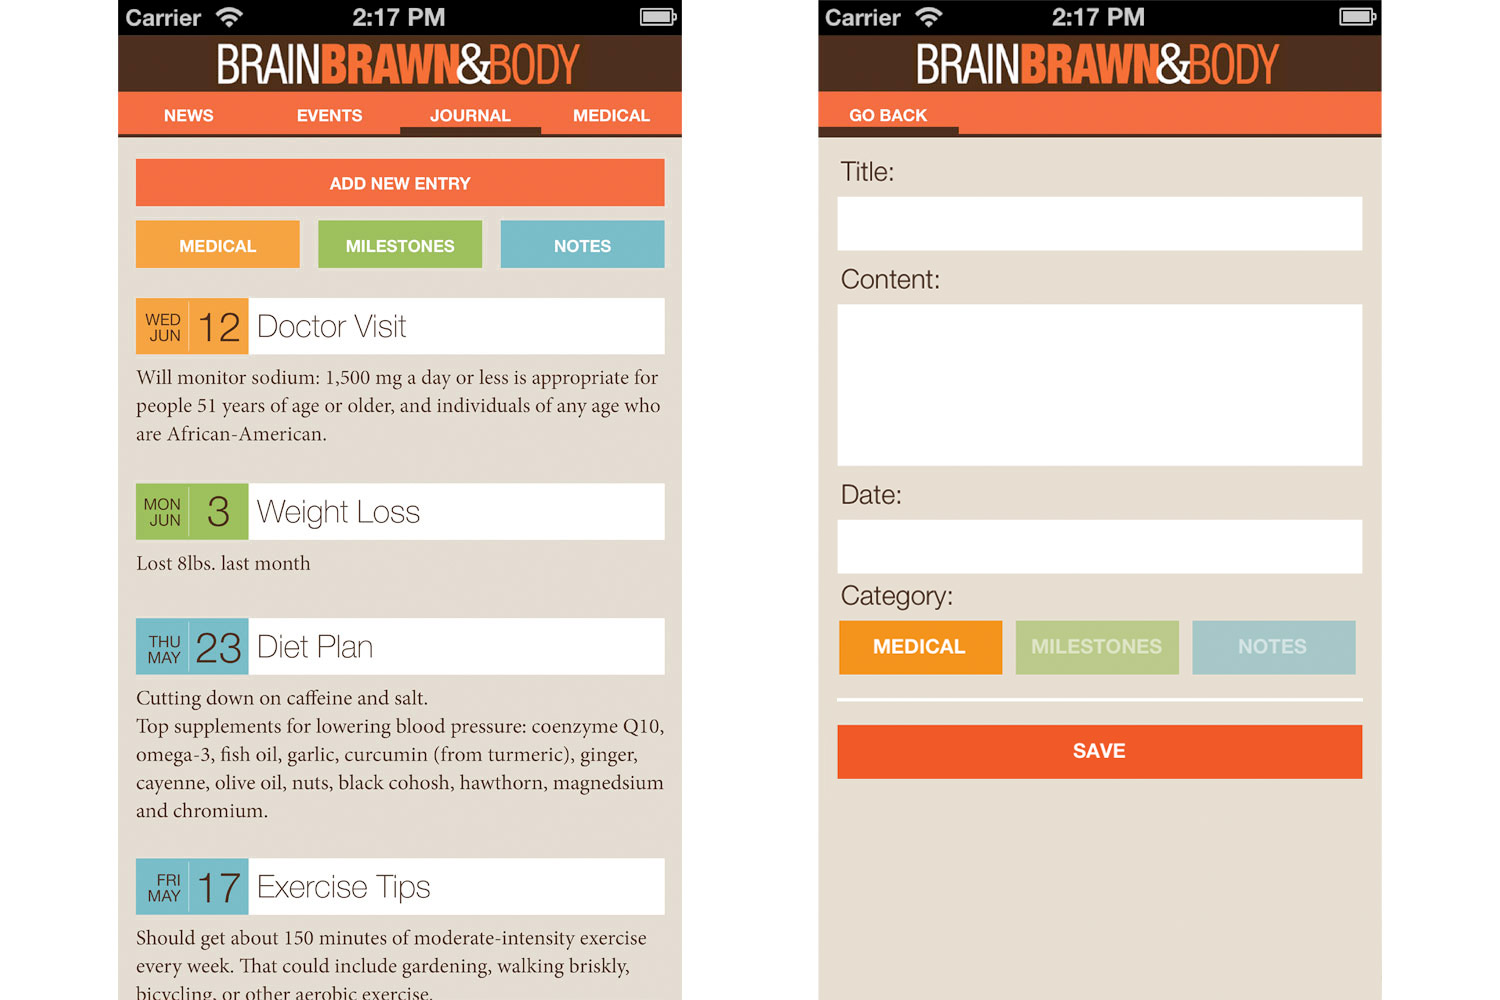 Brain Brawn and Body App Health Journal